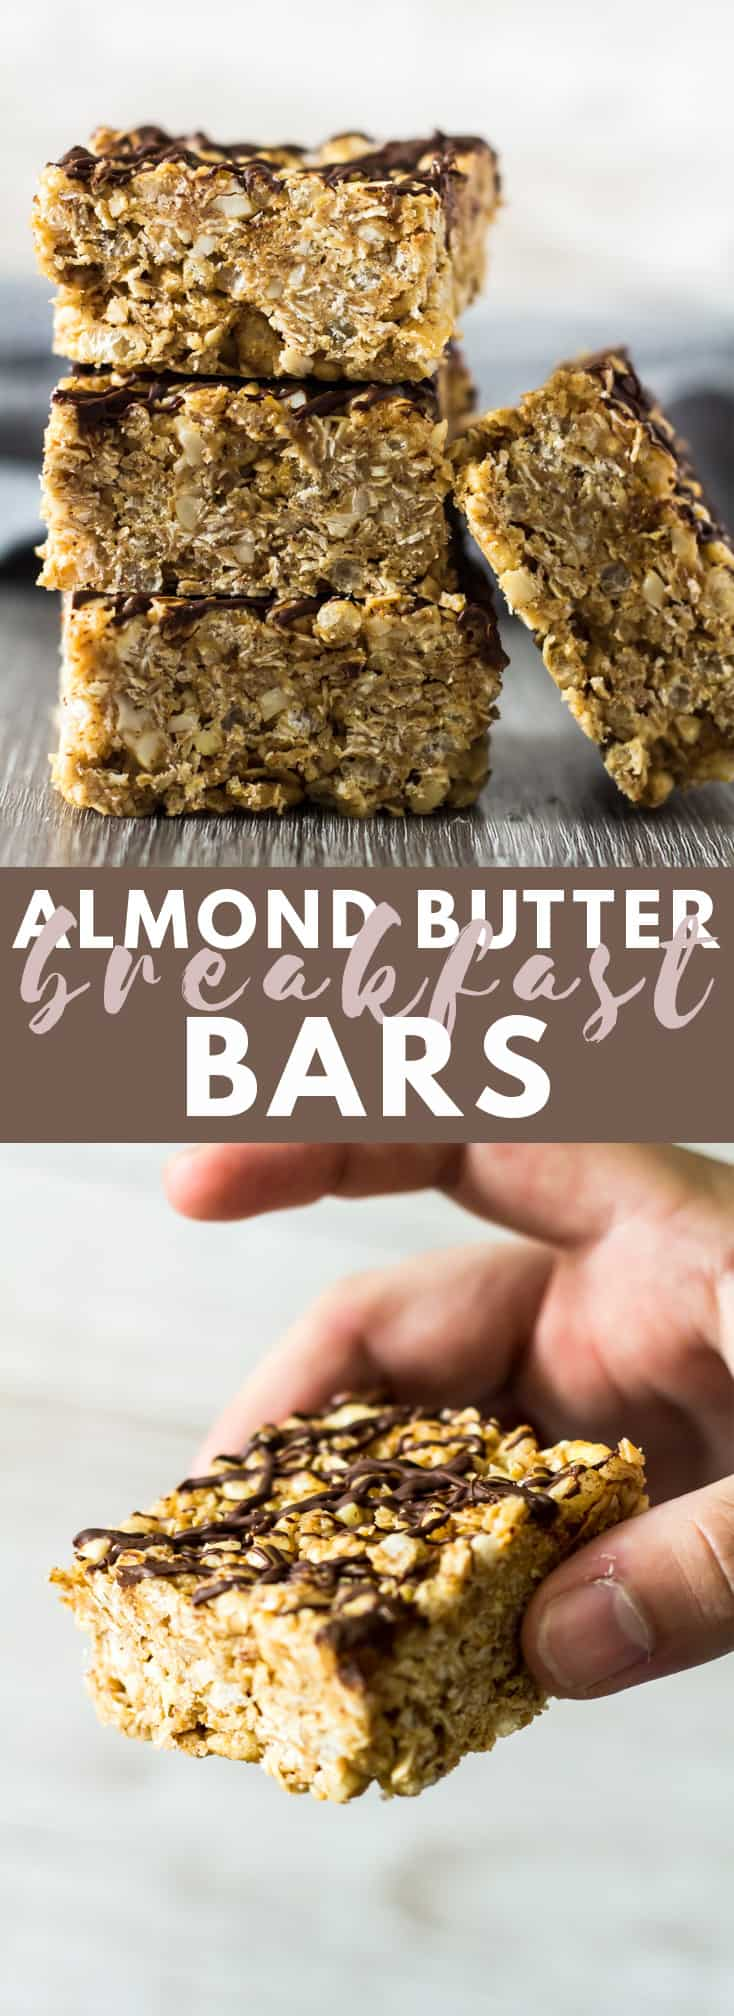 No-Bake Almond Butter Breakfast Bars - Deliciously thick and chewy no-bake granola bars that are loaded with almond butter flavour, and drizzled with dark chocolate! #nobake #almondbutter #granolabars #breakfast #recipe